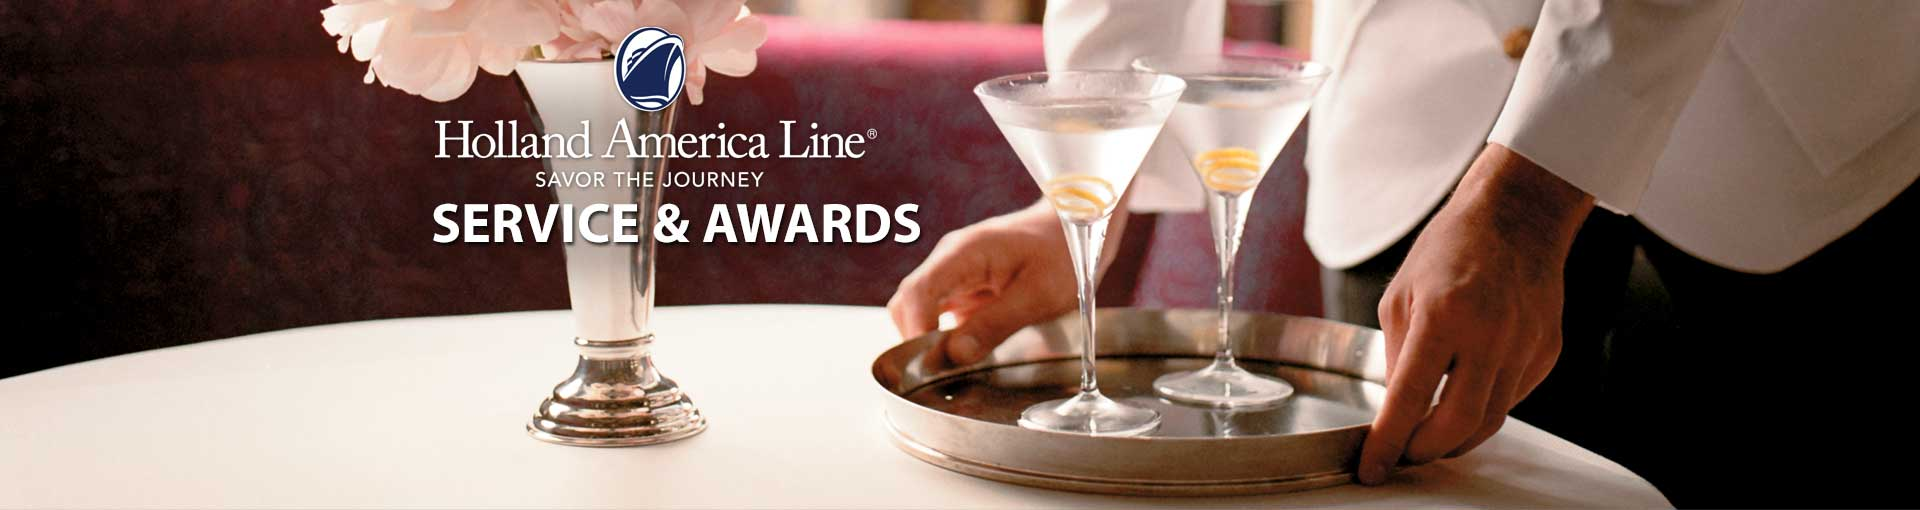 Holland America Line Service & Awards